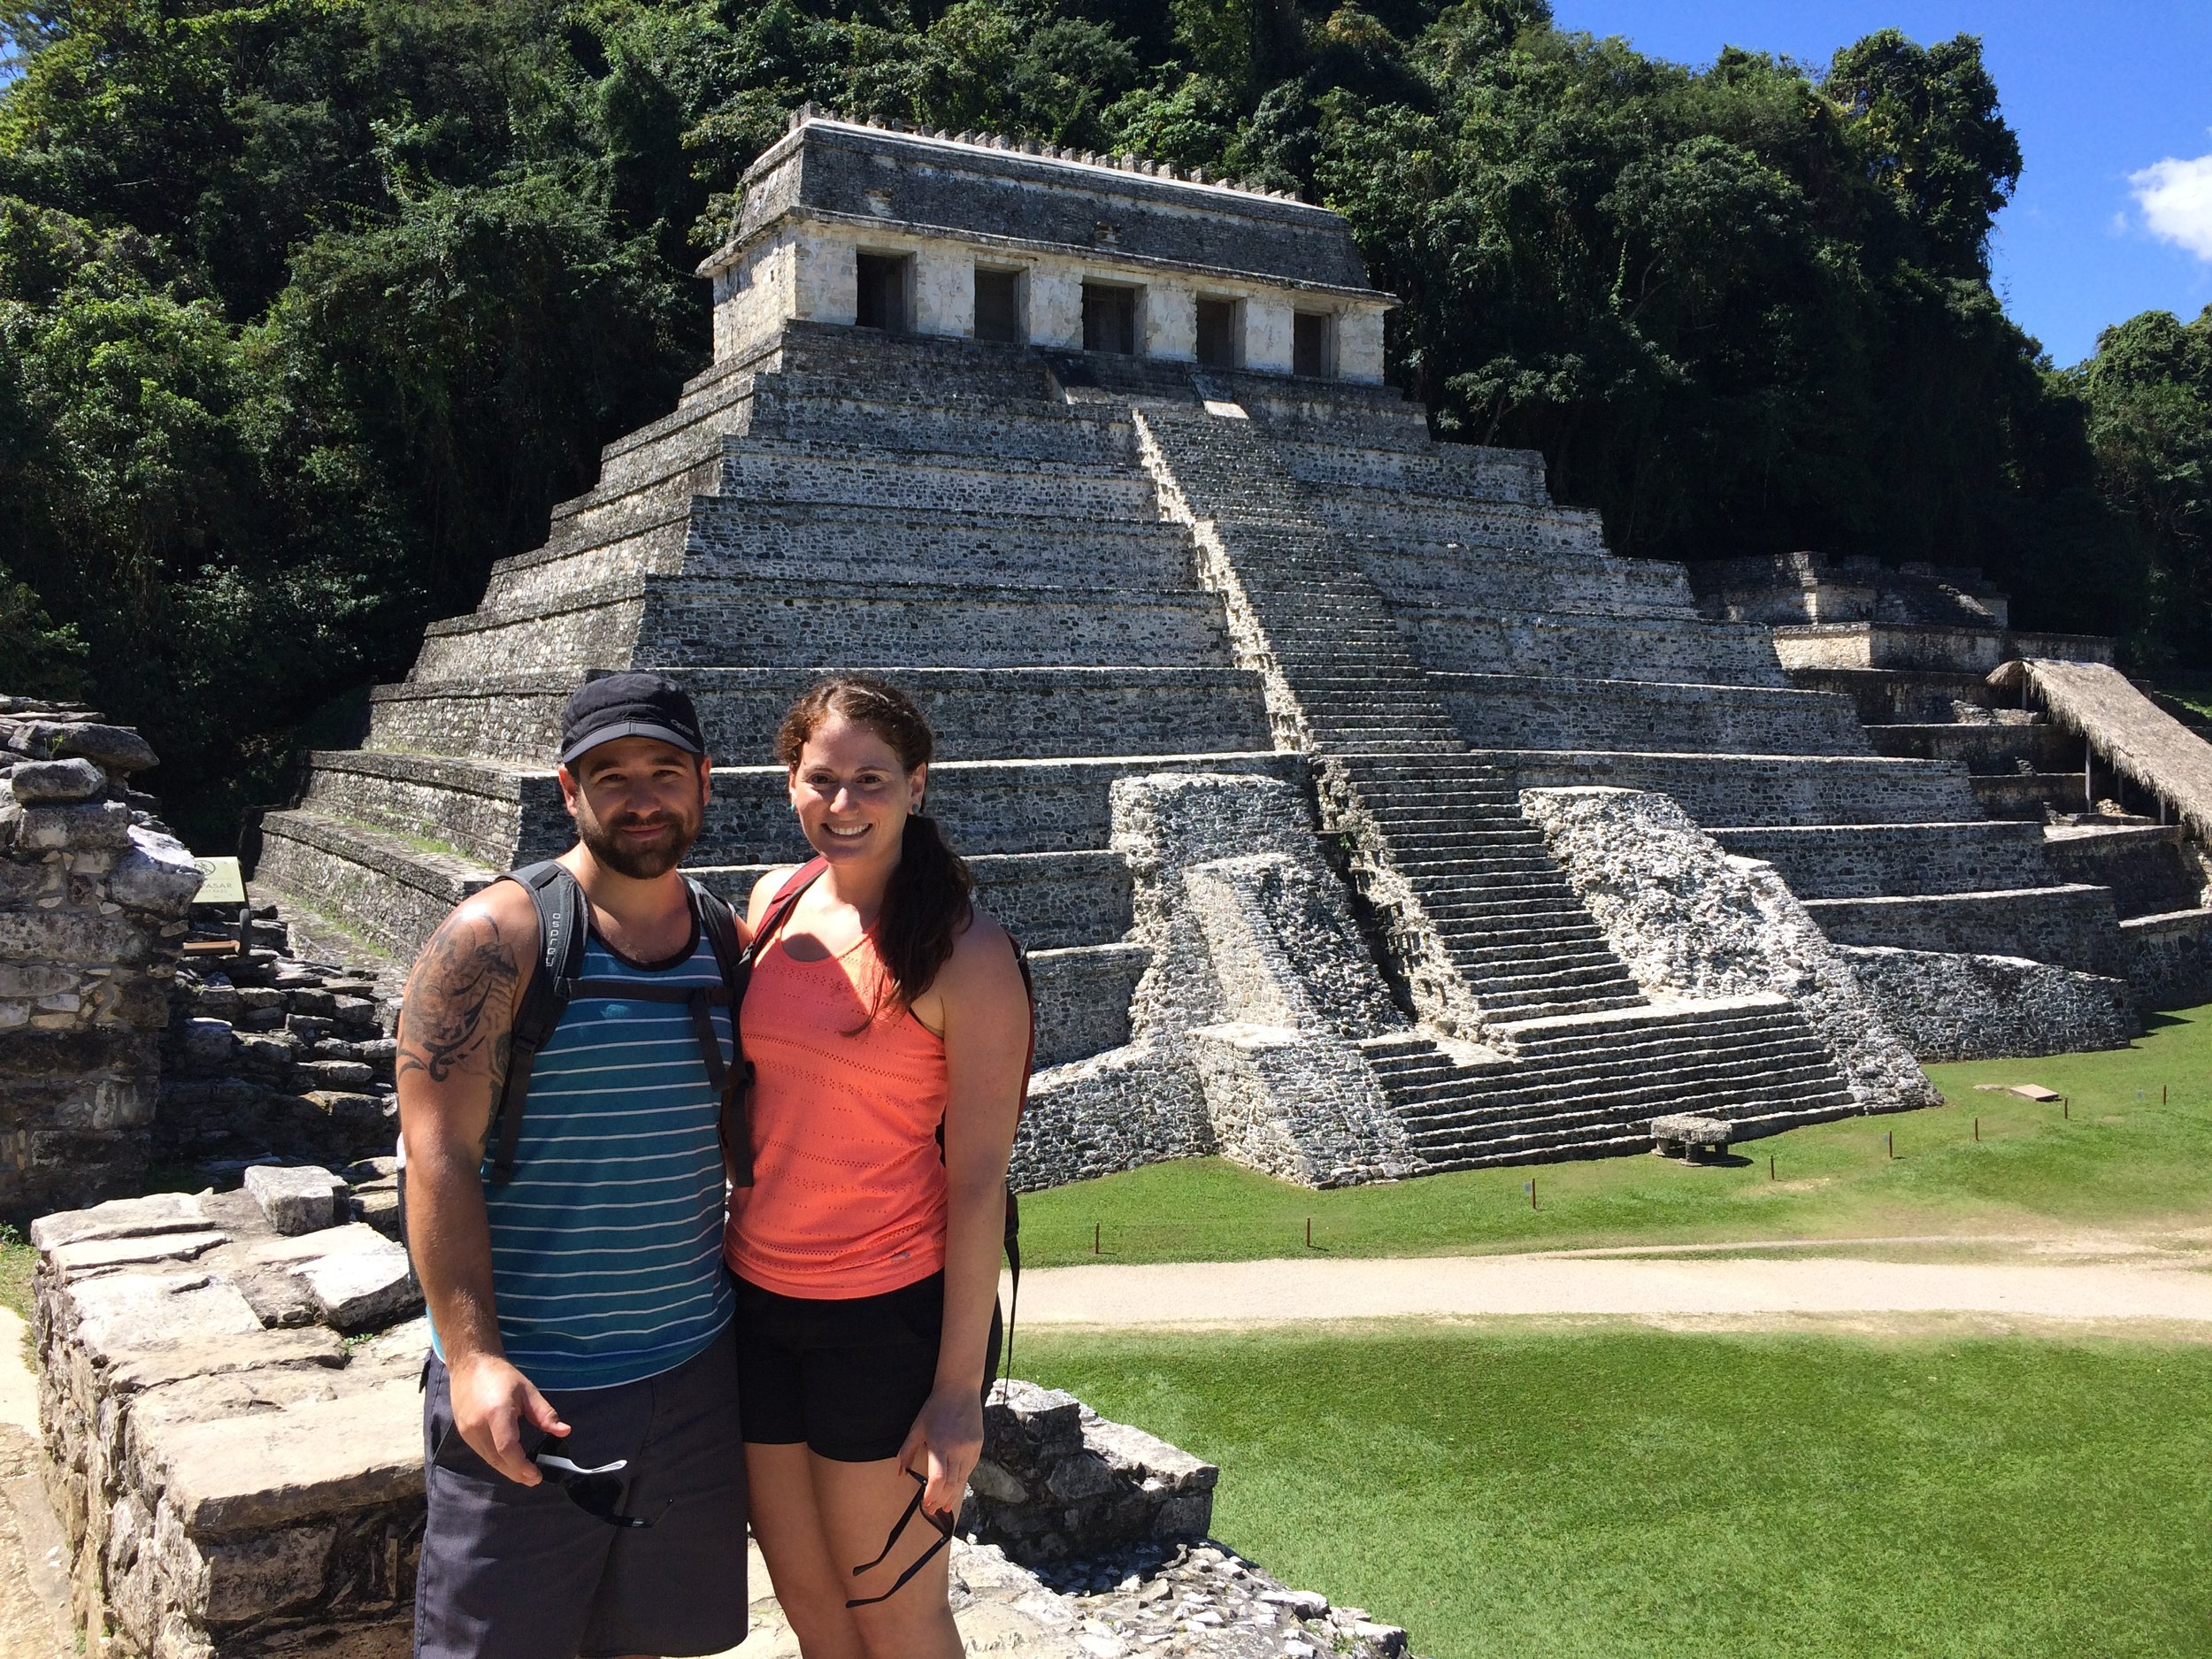 Bryan and I at the Palenque ruins.